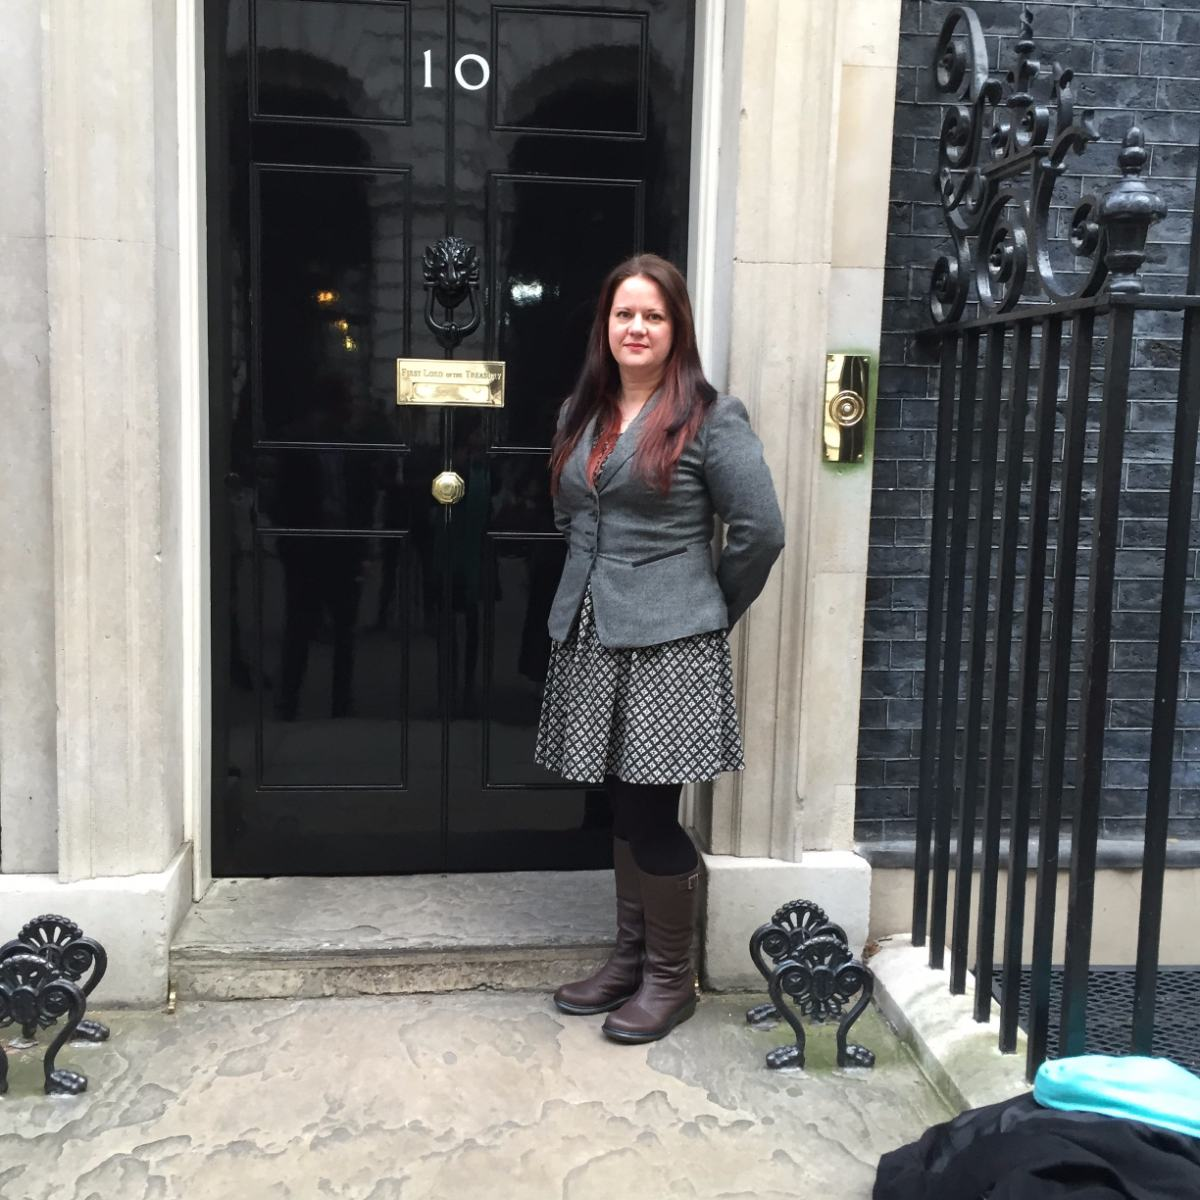 I go to Number 10 Downing Street. Get Me!: By Factory, Digital Agency In Manchester